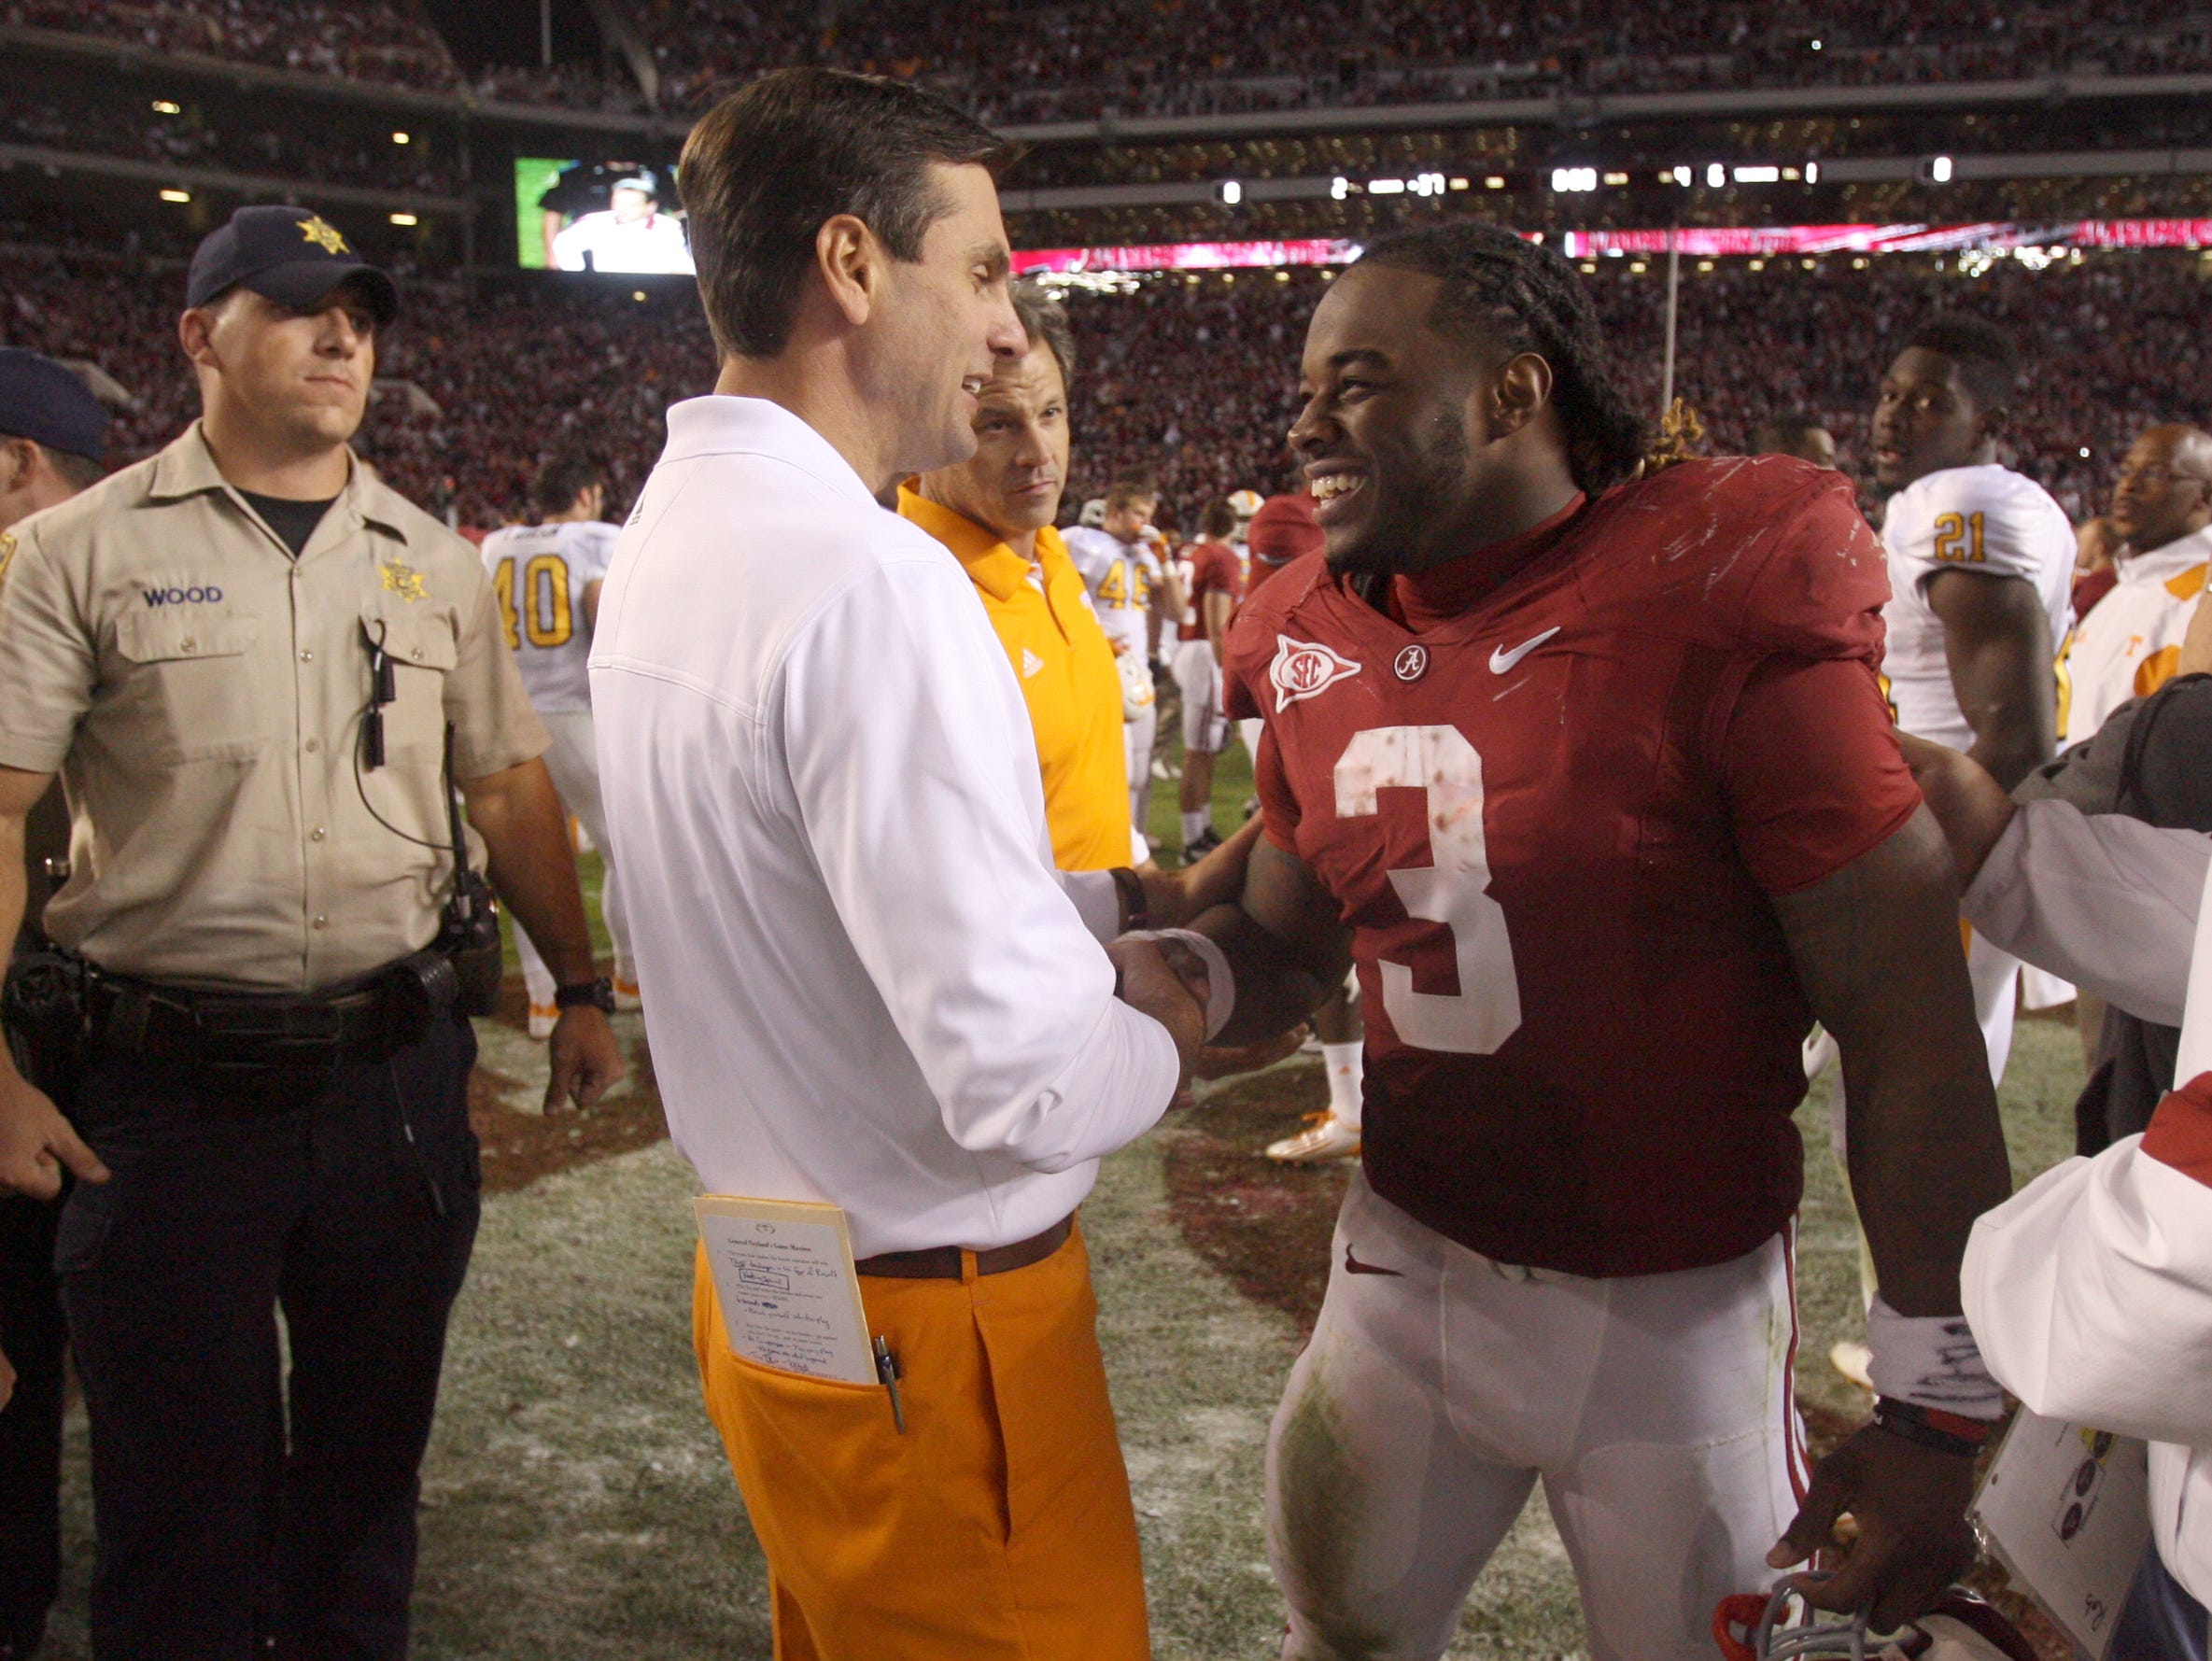 Tennessee head coach Derek Dooley talks with Alabama running back Trent Richardson (3) after the Vols lost 37-6 to the Crimson Tide at Bryant-Denny Stadium in Tuscaloosa, Ala., Saturday, Oct. 22, 2011.